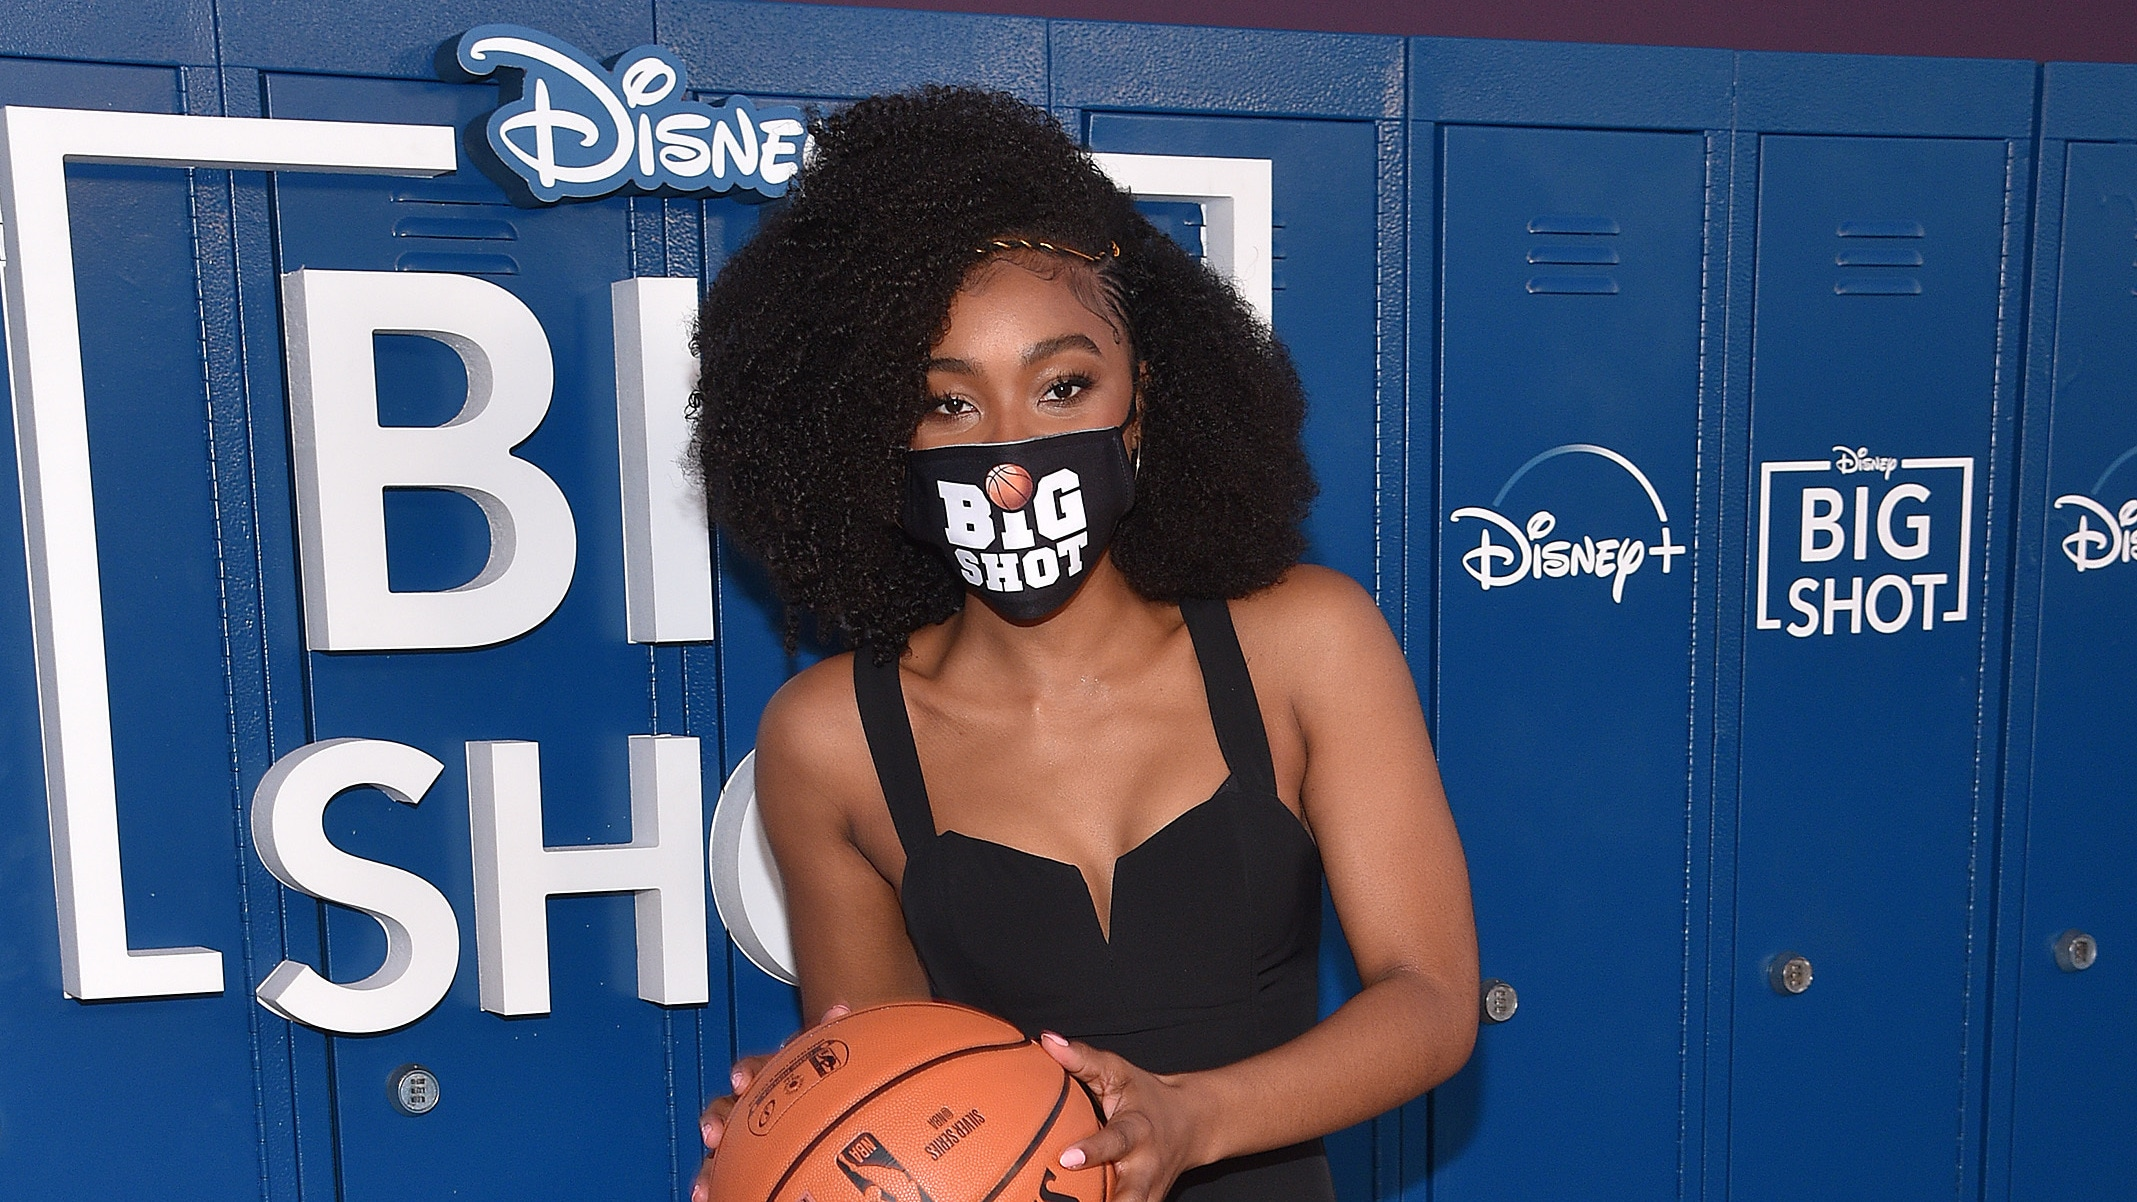 LOS ANGELES, CA - APRIL 14: Monique Green attends the world premiere drive-in screening of the Disney + original series ìBIG SHOTî at The Grove in Los Angeles, California on April 14, 2021. (Photo by Stewart Cook/Disney +/PictureGroup)